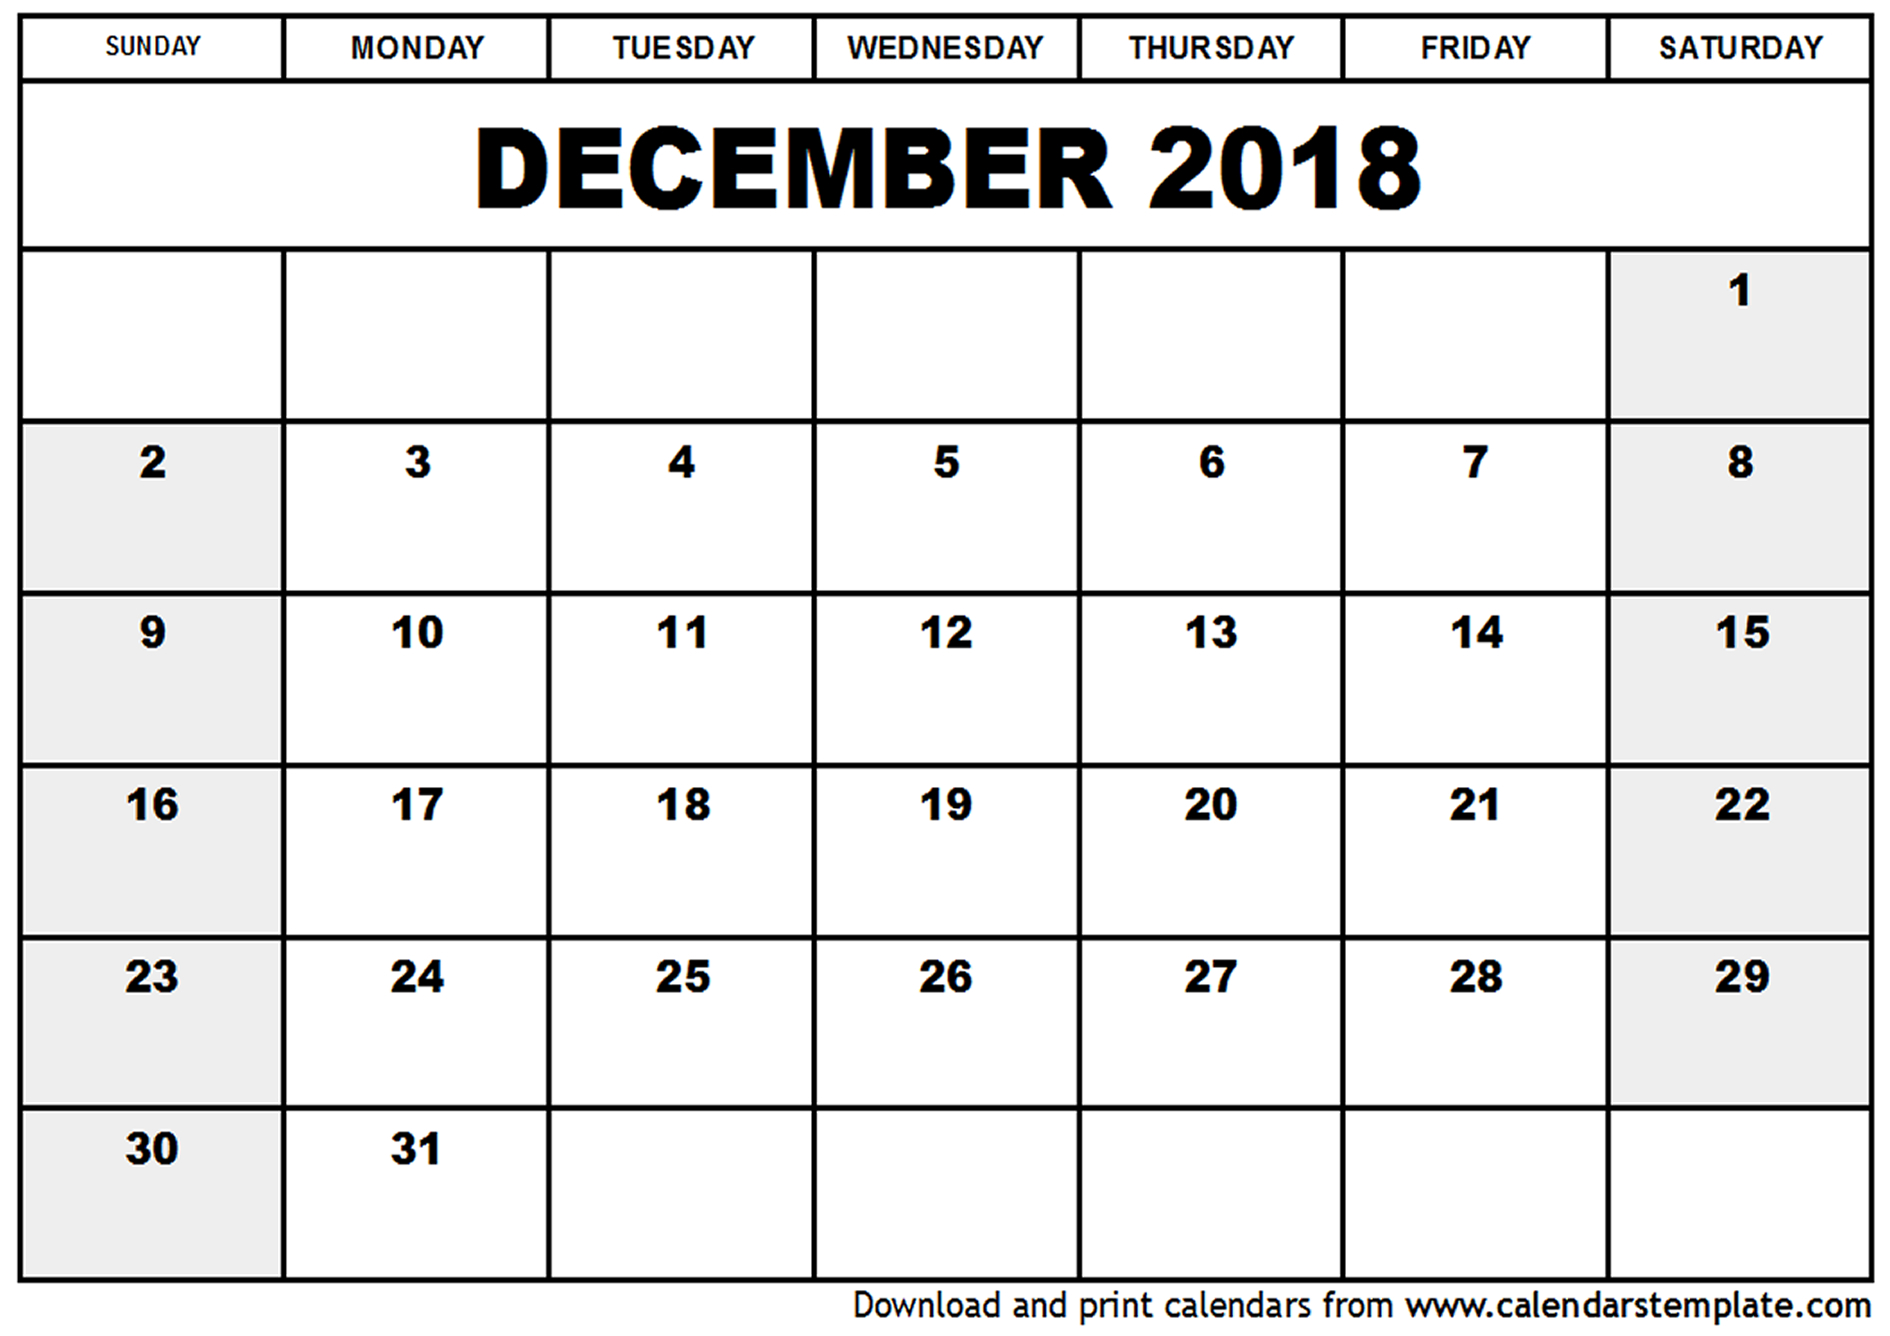 downloadable calendar december 2018 Madrat.co